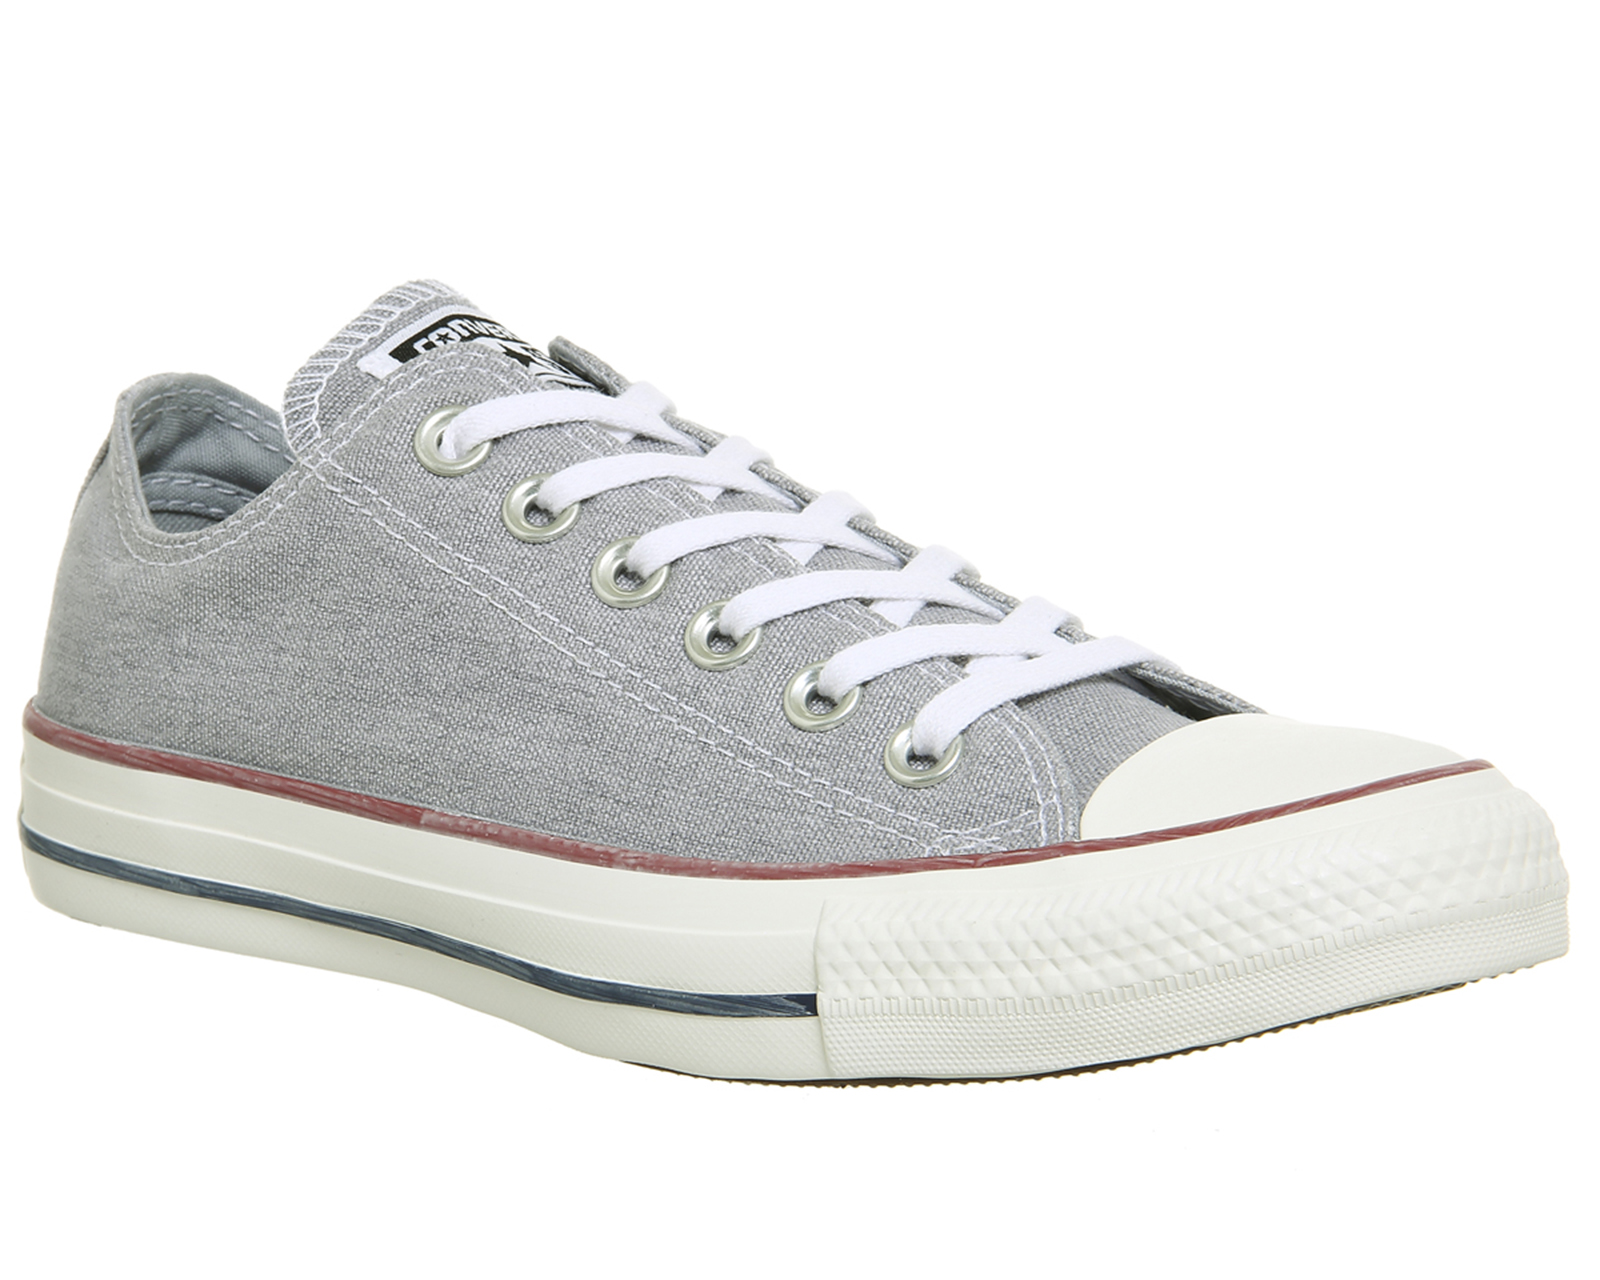 a761b7905dc0 Sentinel Converse Converse All Star Low Trainers WOLF GREY WHITE Trainers  Shoes